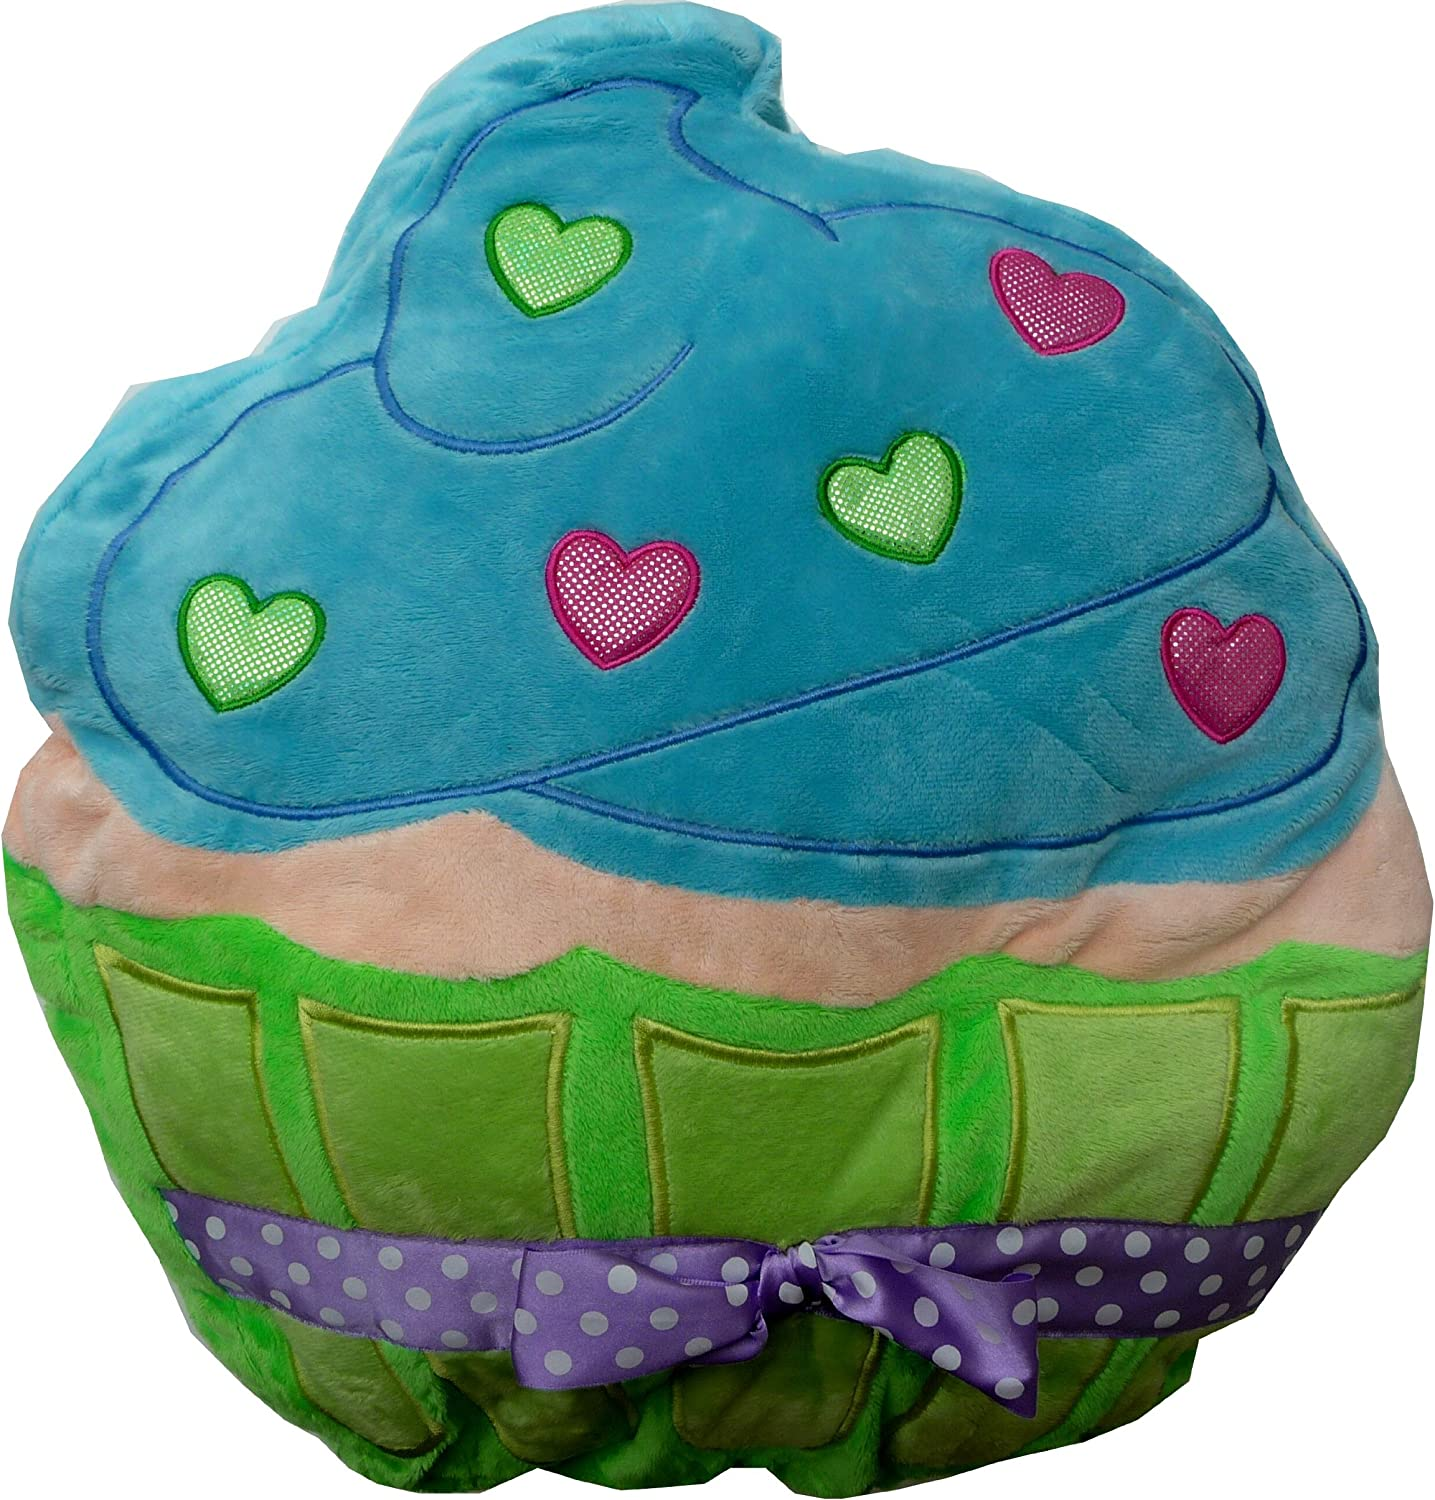 Plush Cupcake Pillow - Green and bluee